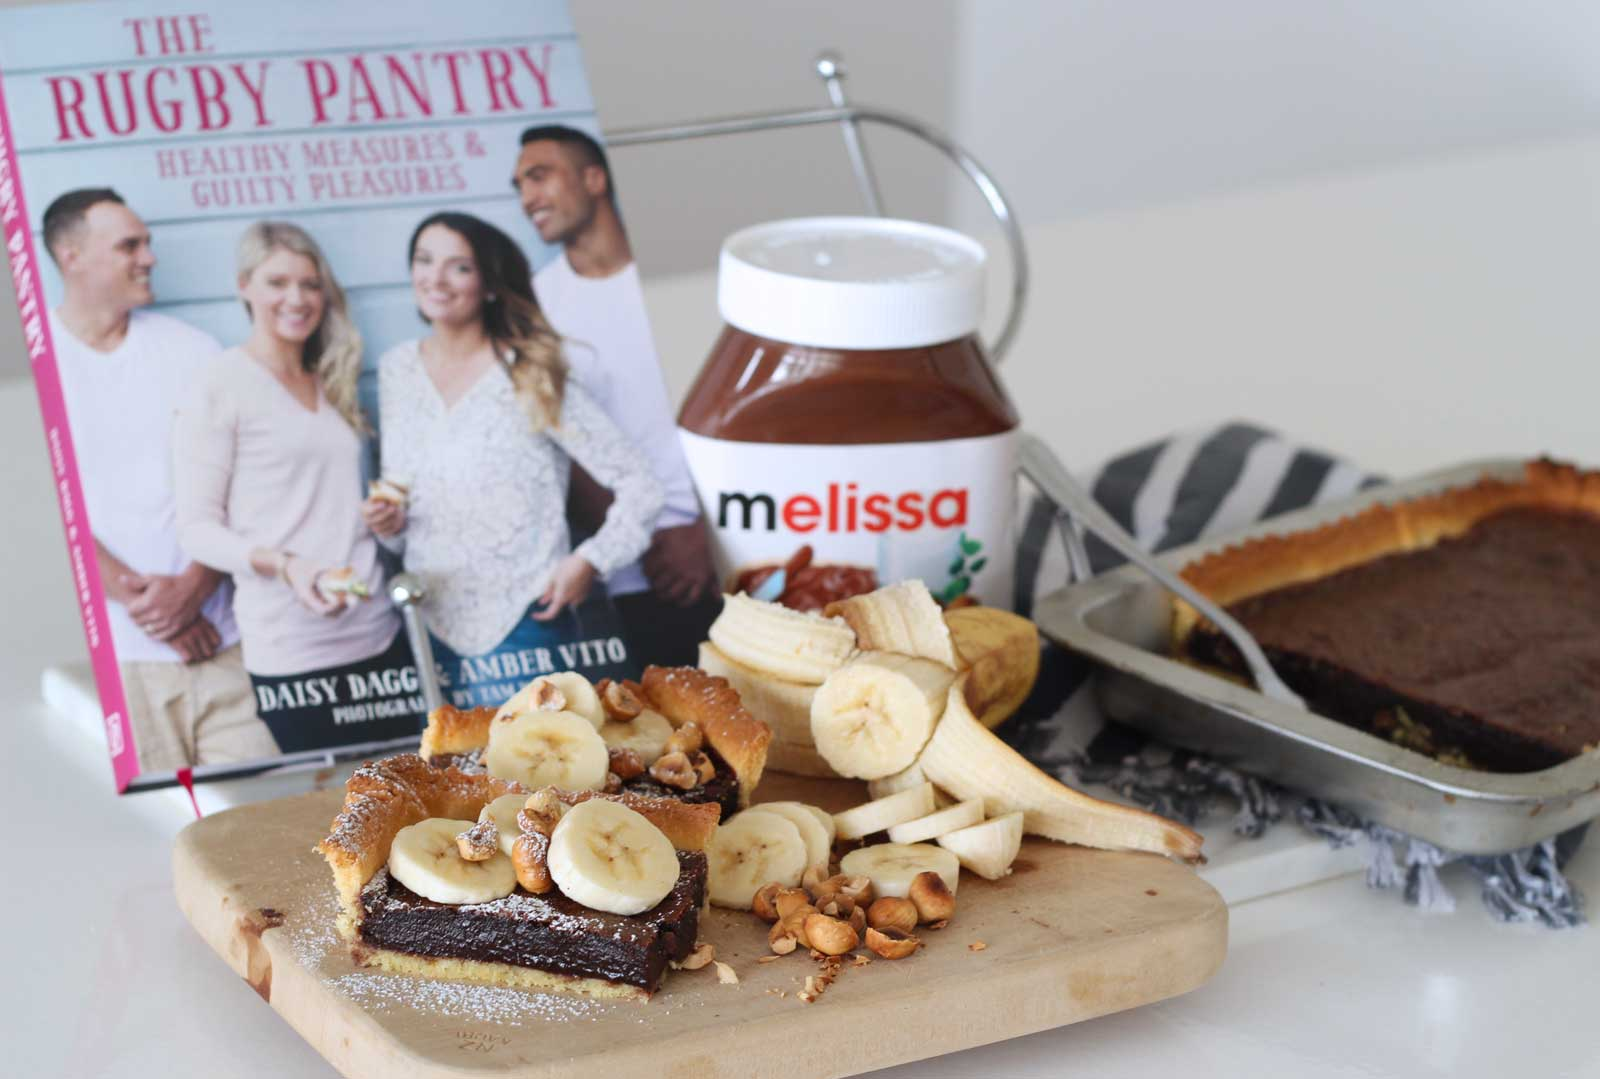 The Rugby Pantry – A Recipe Book for Every Kiwi Kitchen